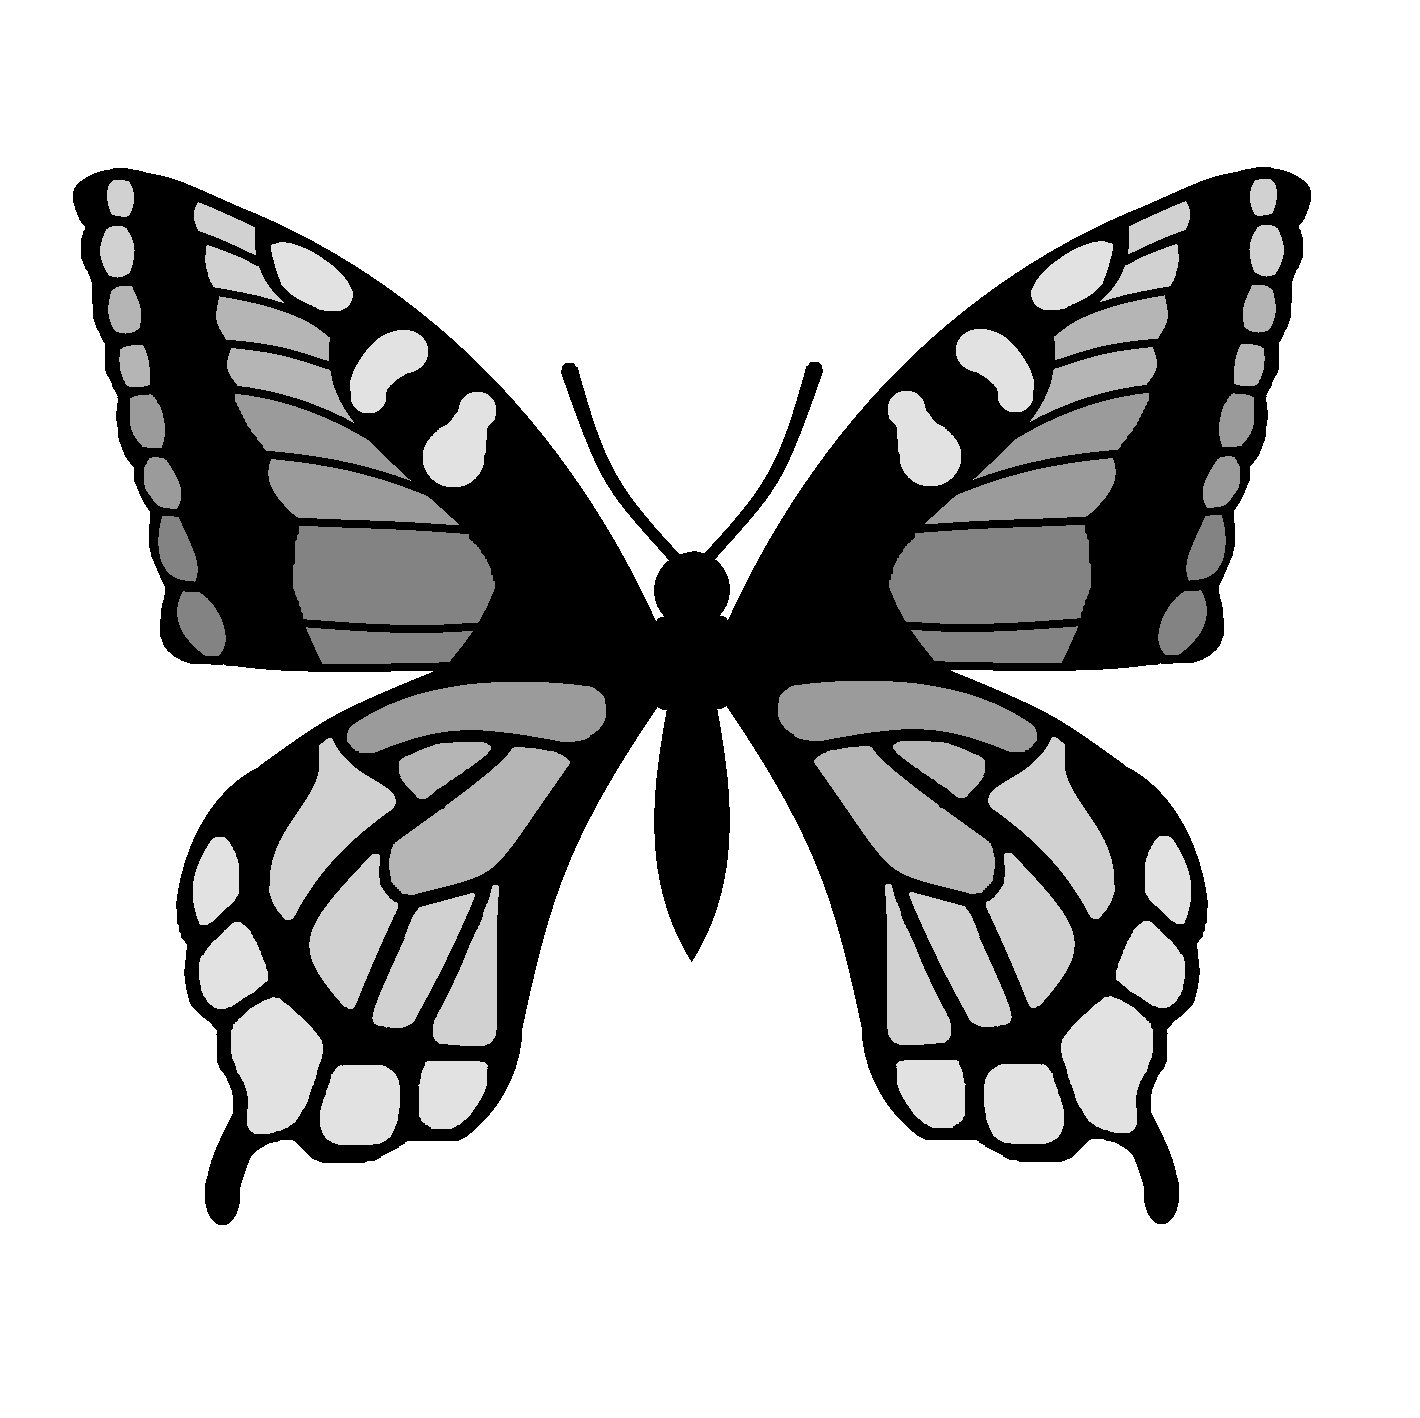 Template For Butterfly Wings - ClipArt Best